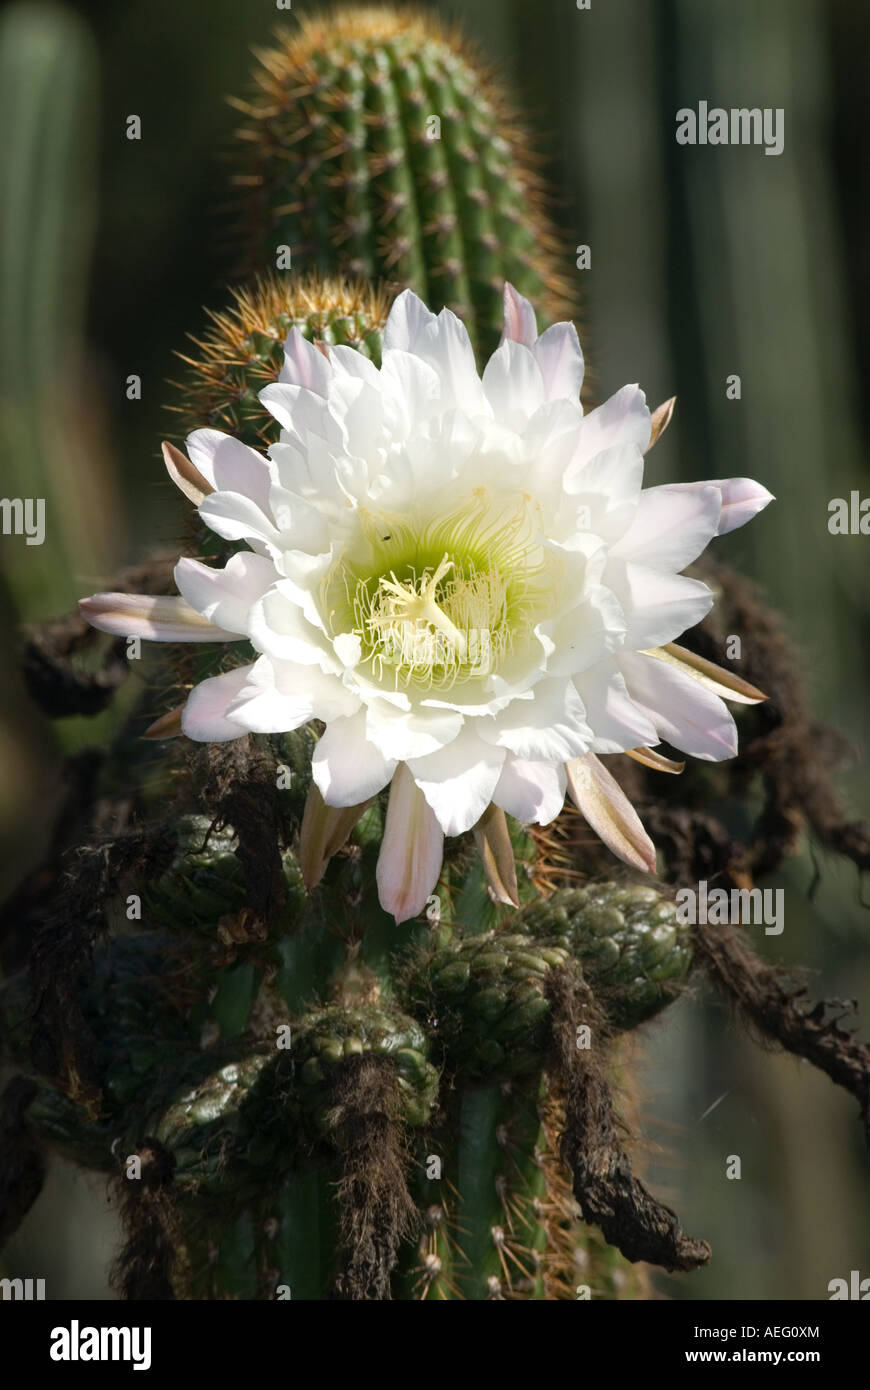 White Cactus Flower Bloom Stock Photo 13673275 Alamy